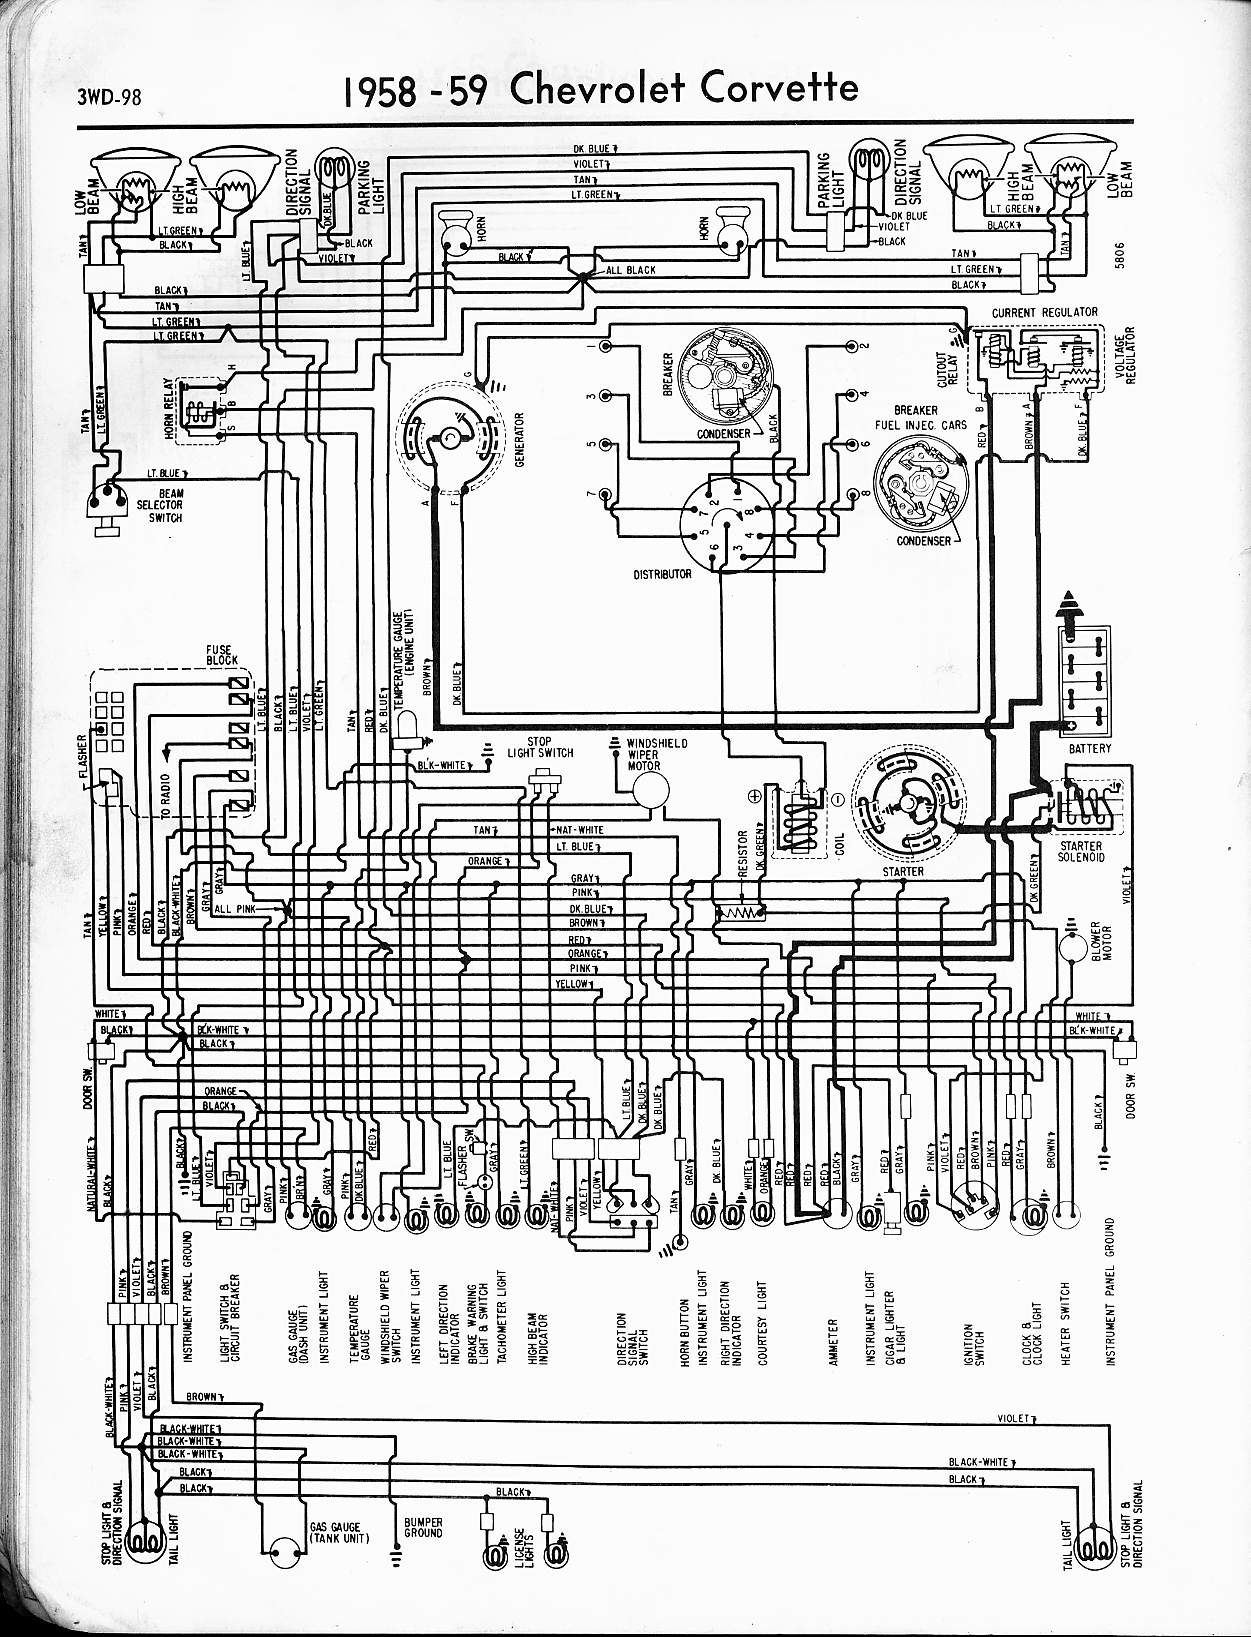 1959 chevy apache wiring diagrams 1959 chevy apache wiring diagram - wiring diagram 1958 chevy apache wiring diagram